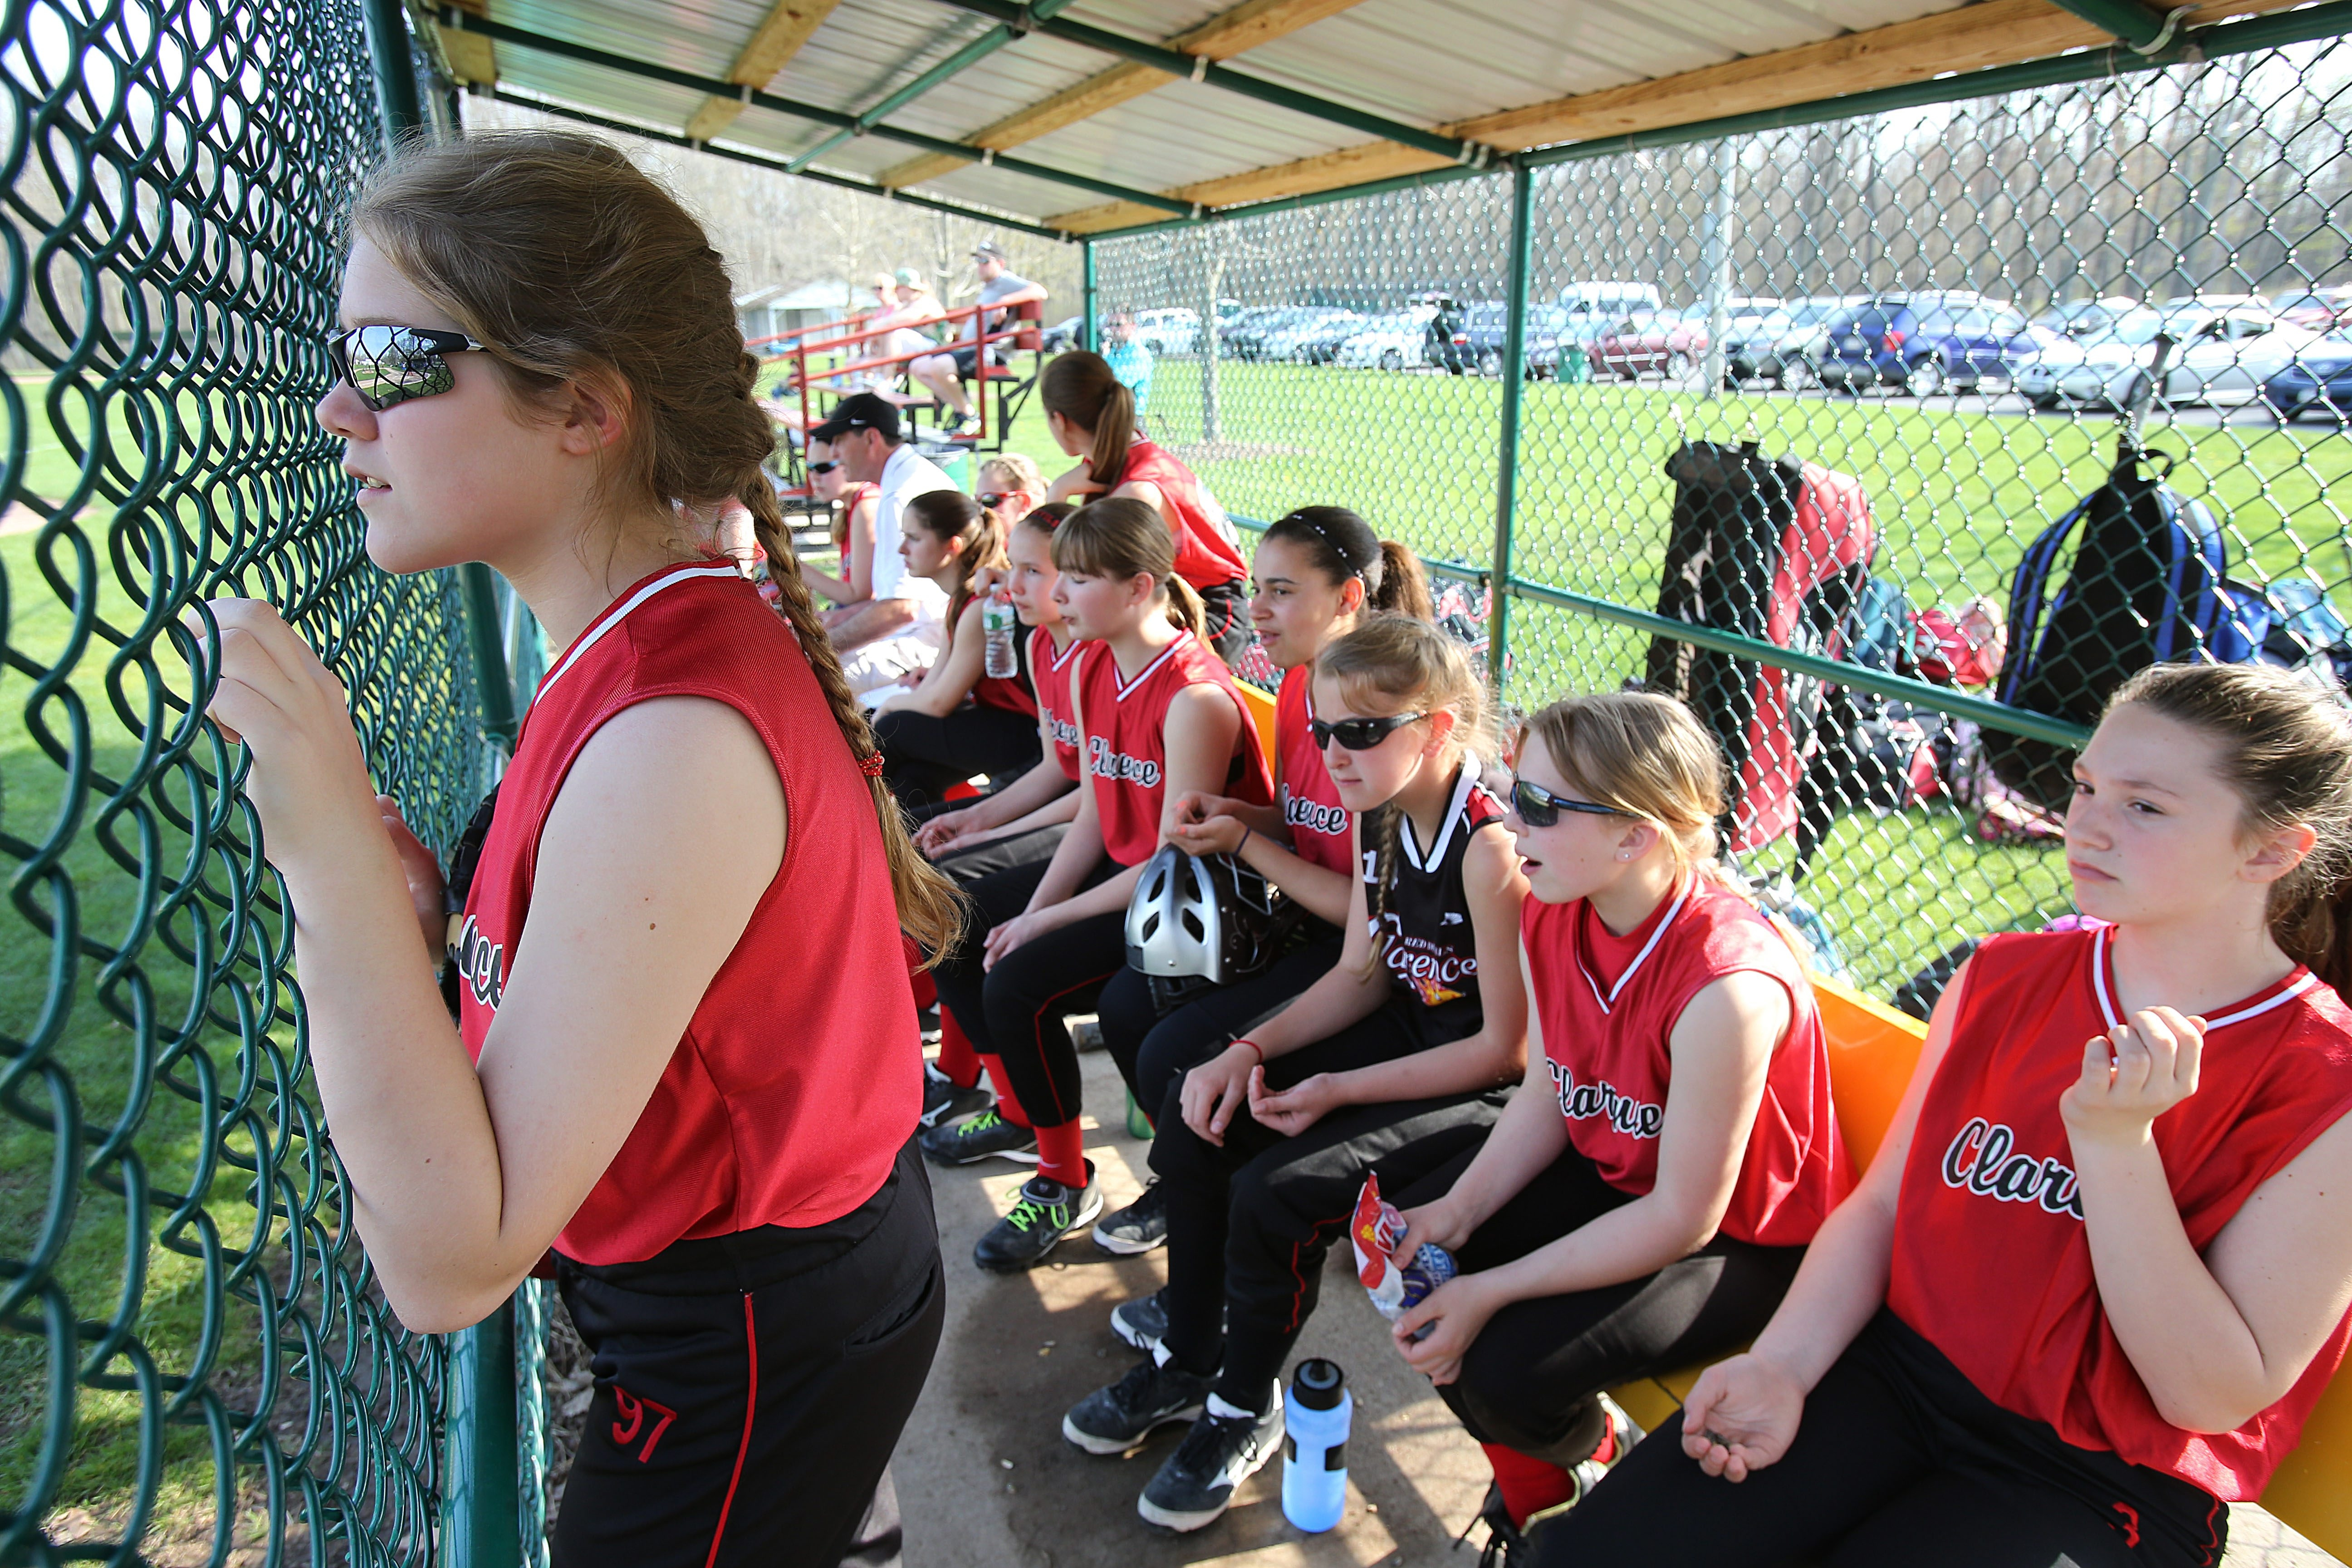 Natalie Sirface, left, of the Clarence modified softball team watches the action with her teammates from the dugout at Jeffrey P. Brownschidle Field in Clarence Town Park.